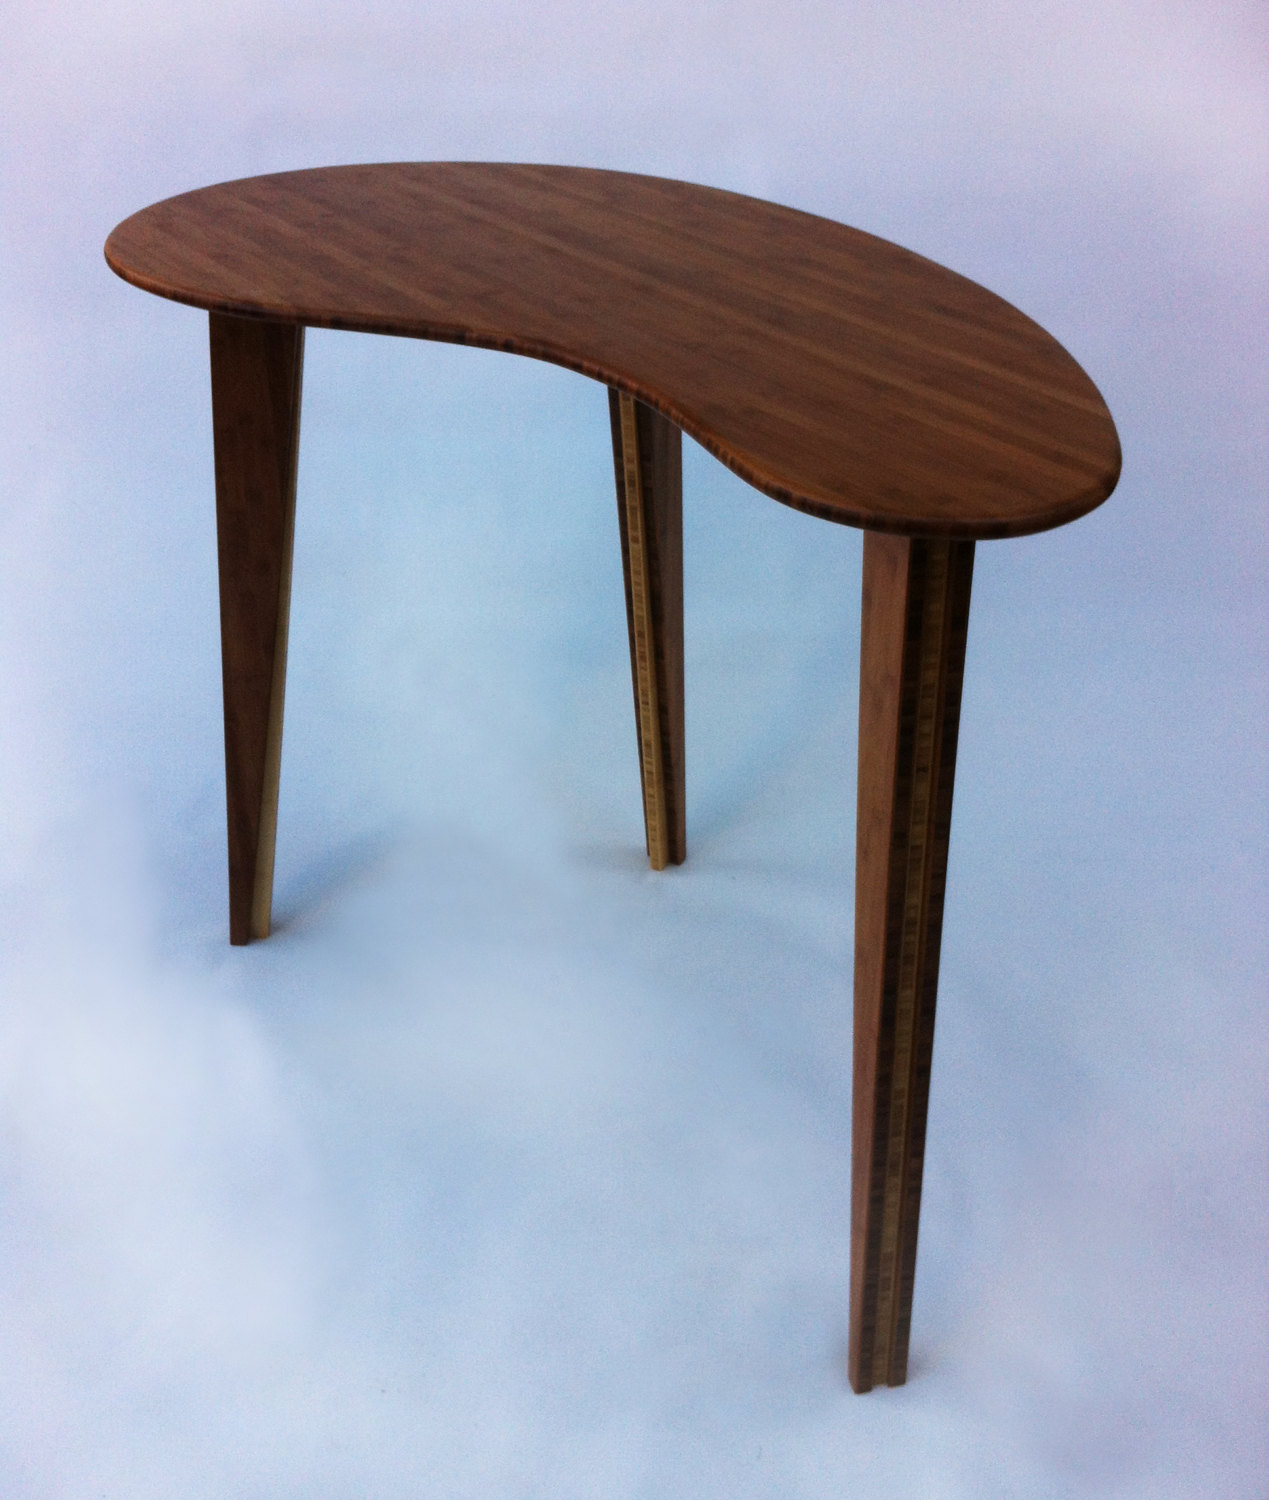 Standing Cafe Bar Top Bistro Table Tall Bamboo Kidney Bean - Standing cafe table